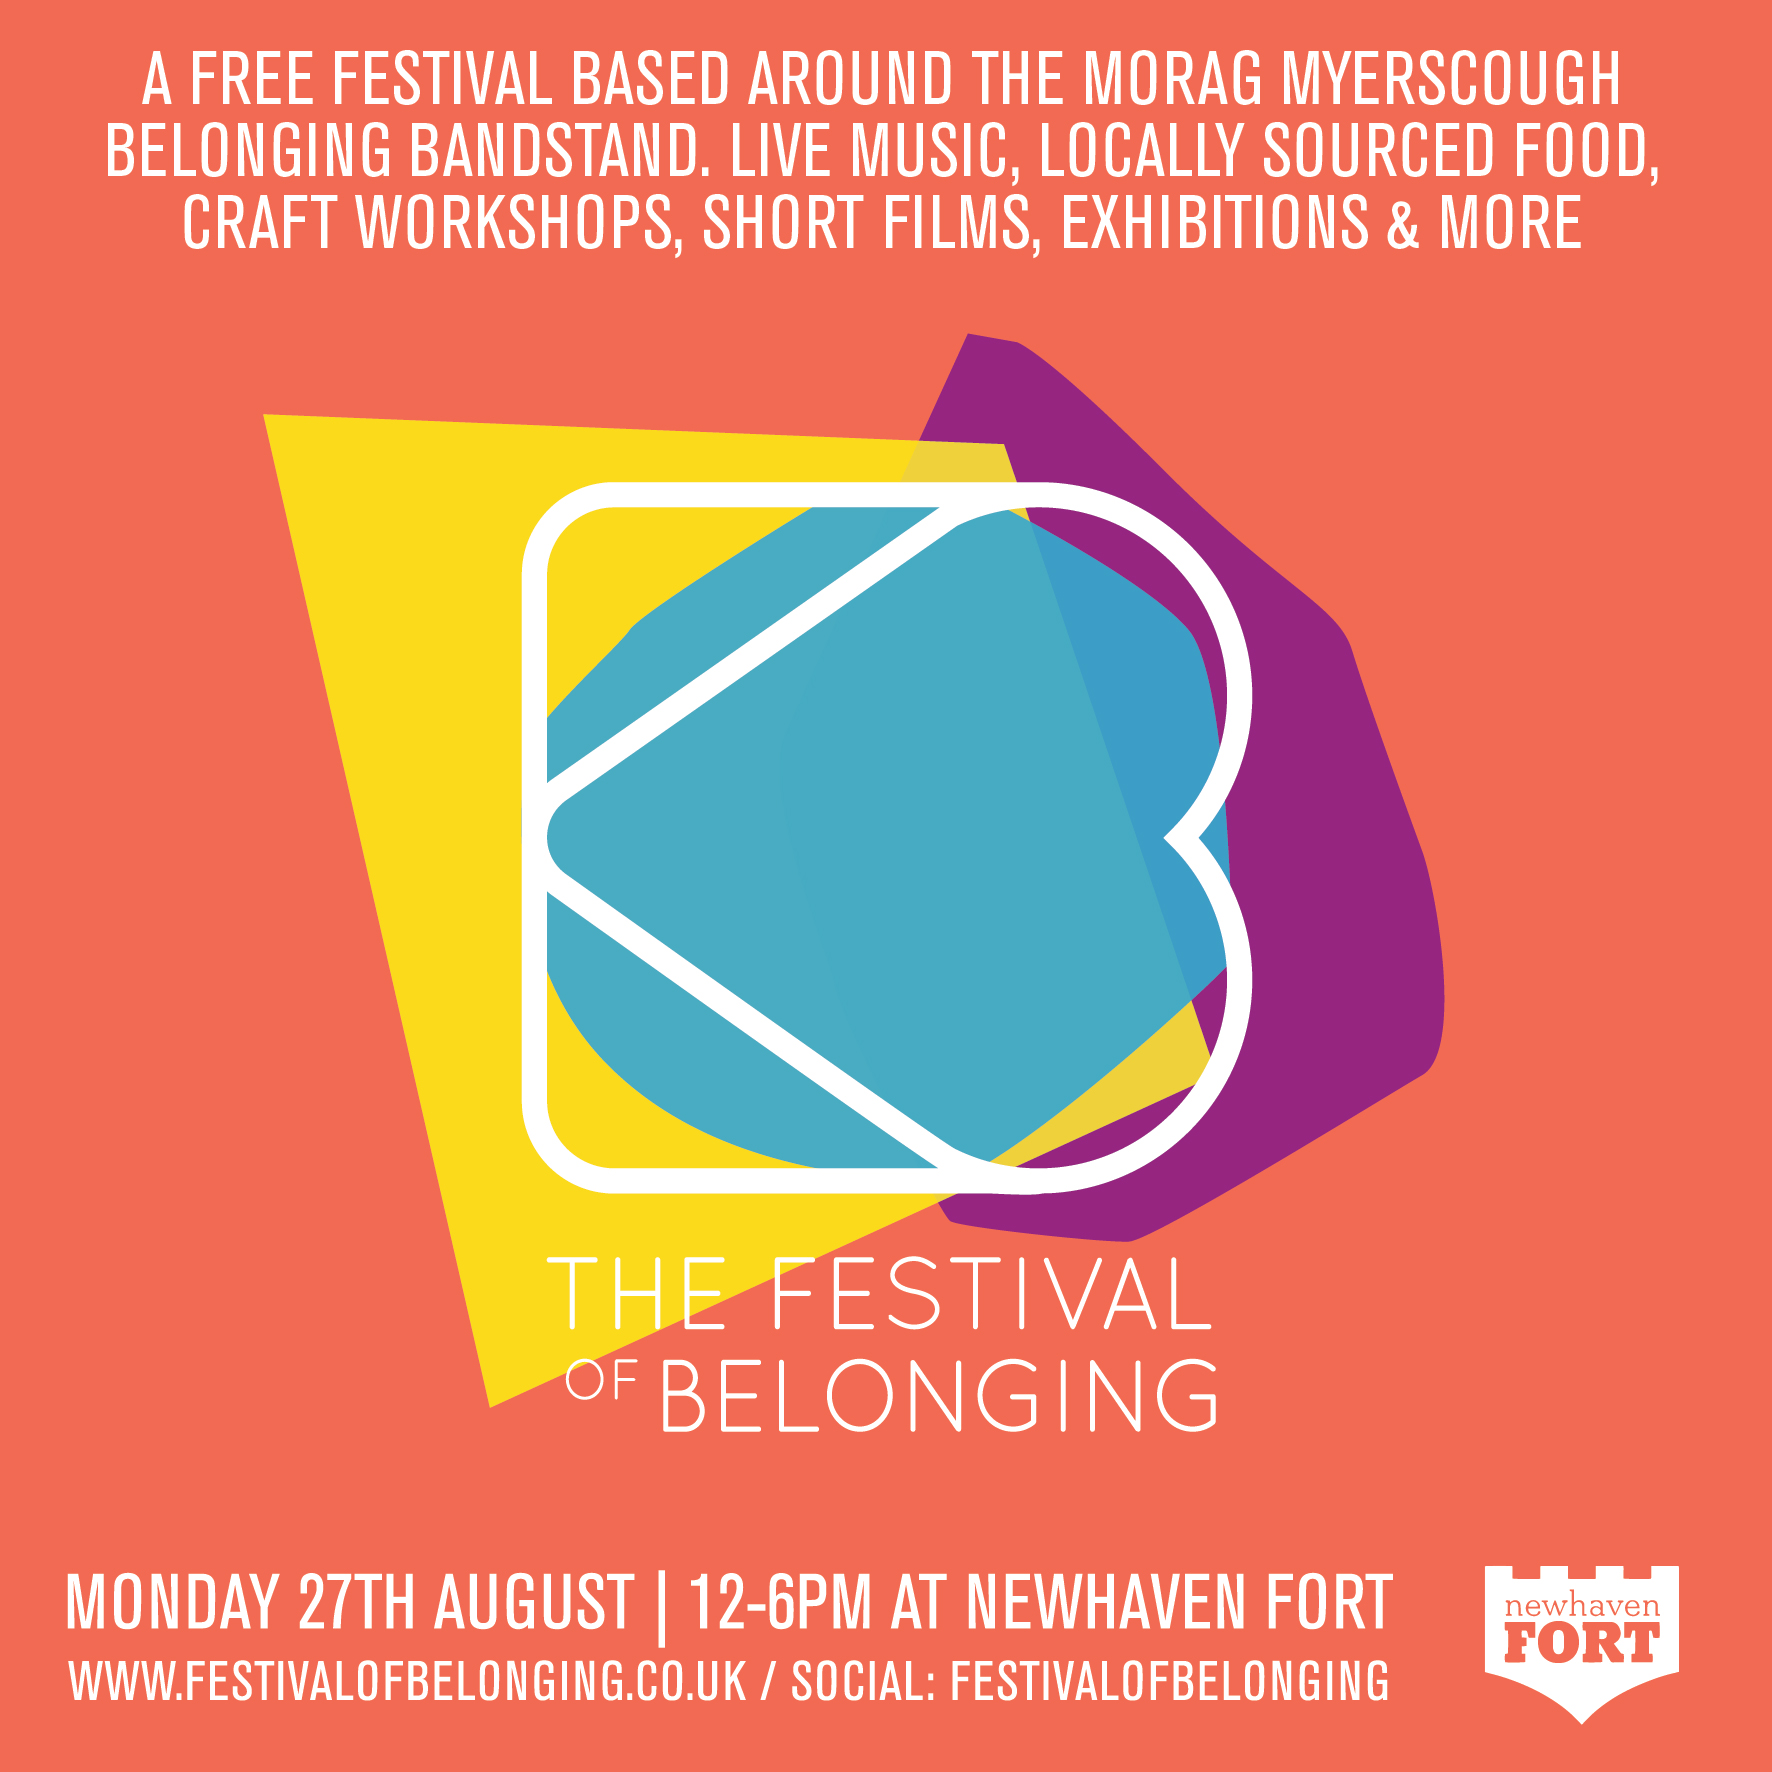 Festival of Belonging 27th August